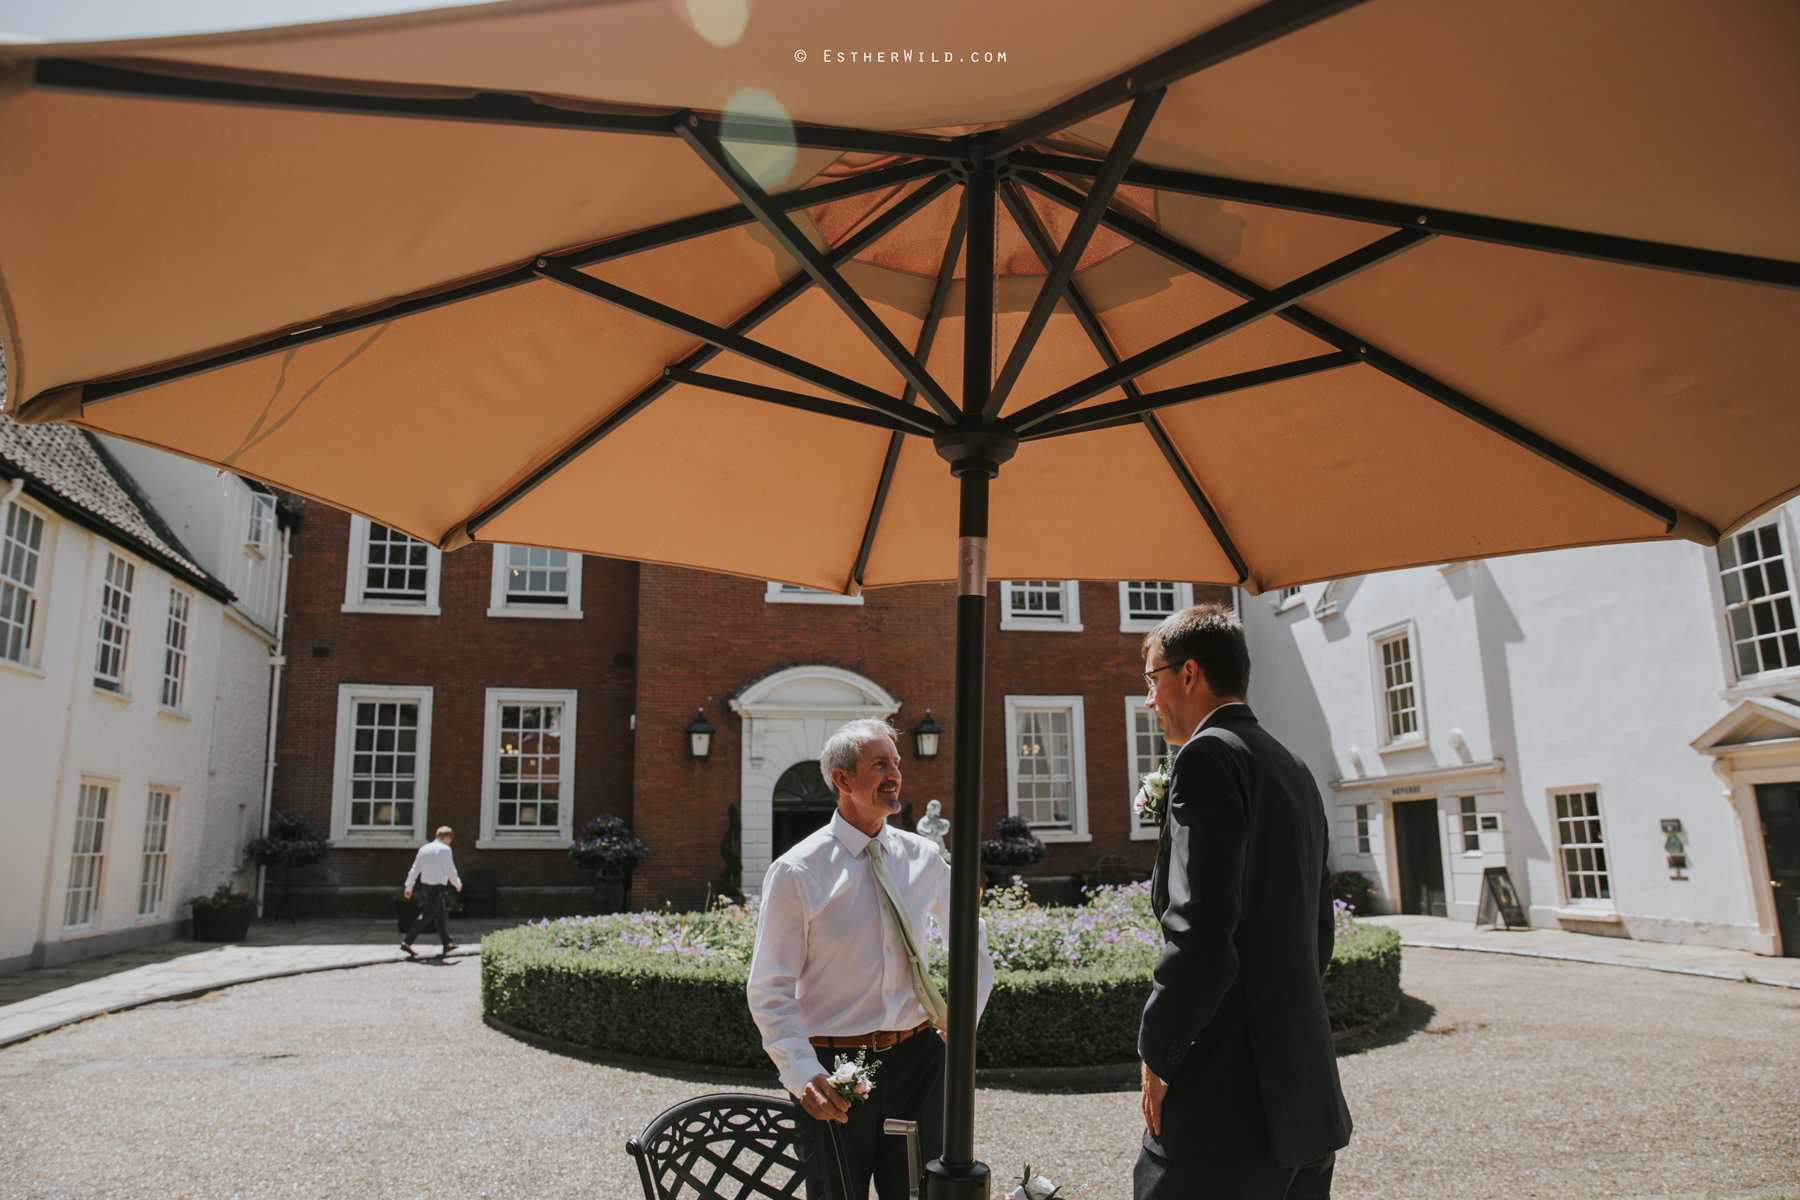 Assembly_House_Norwich_Norfolk_Esther_Wild_Photographer_IMG_0286.jpg